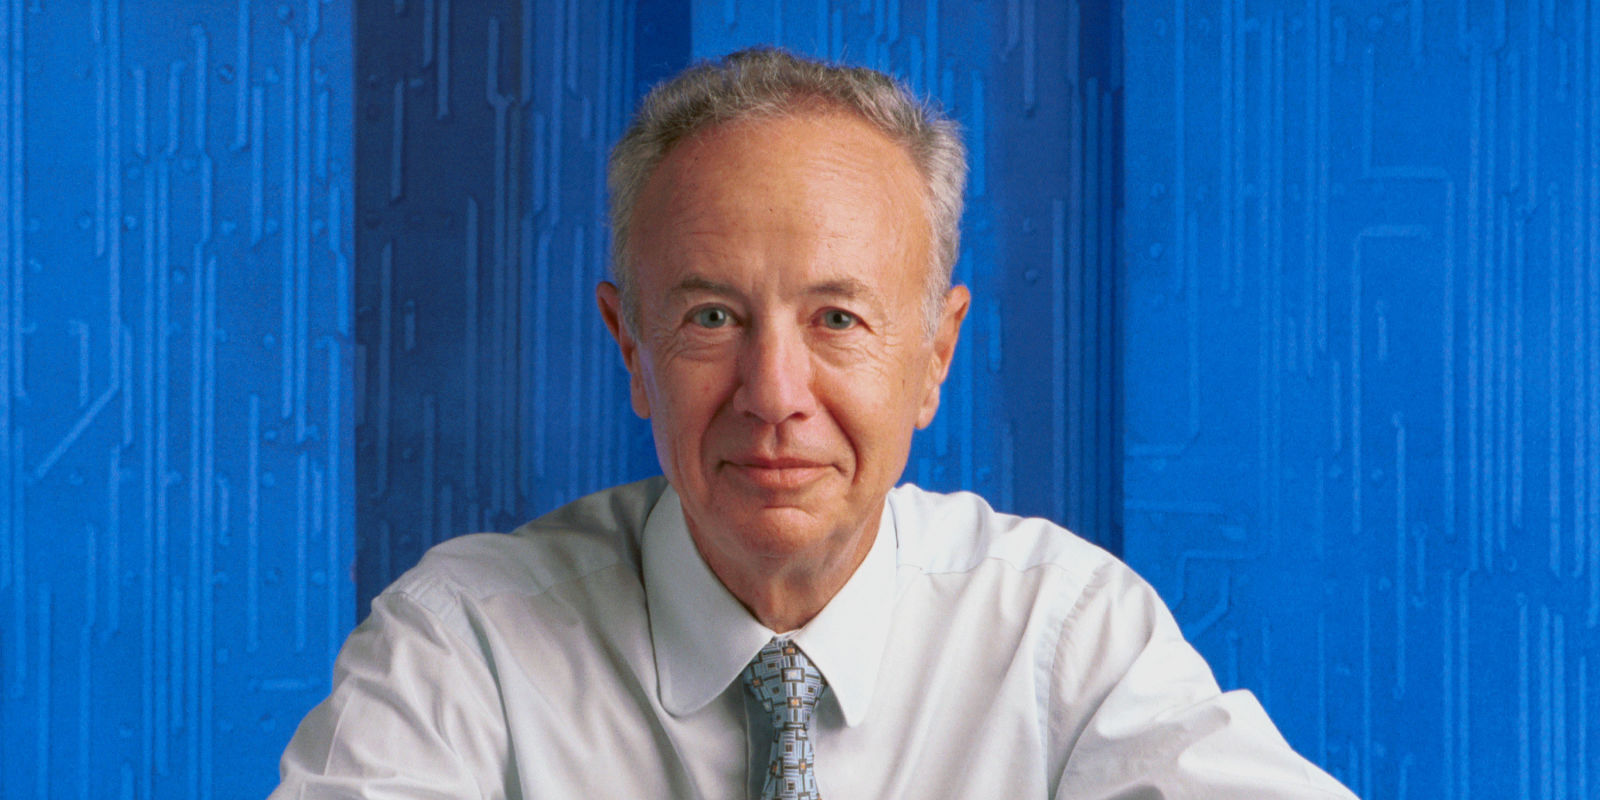 andrew grove and intel Andrew s grove, the longtime chief executive and chairman of intel corporation  who was one of the most acclaimed and influential.